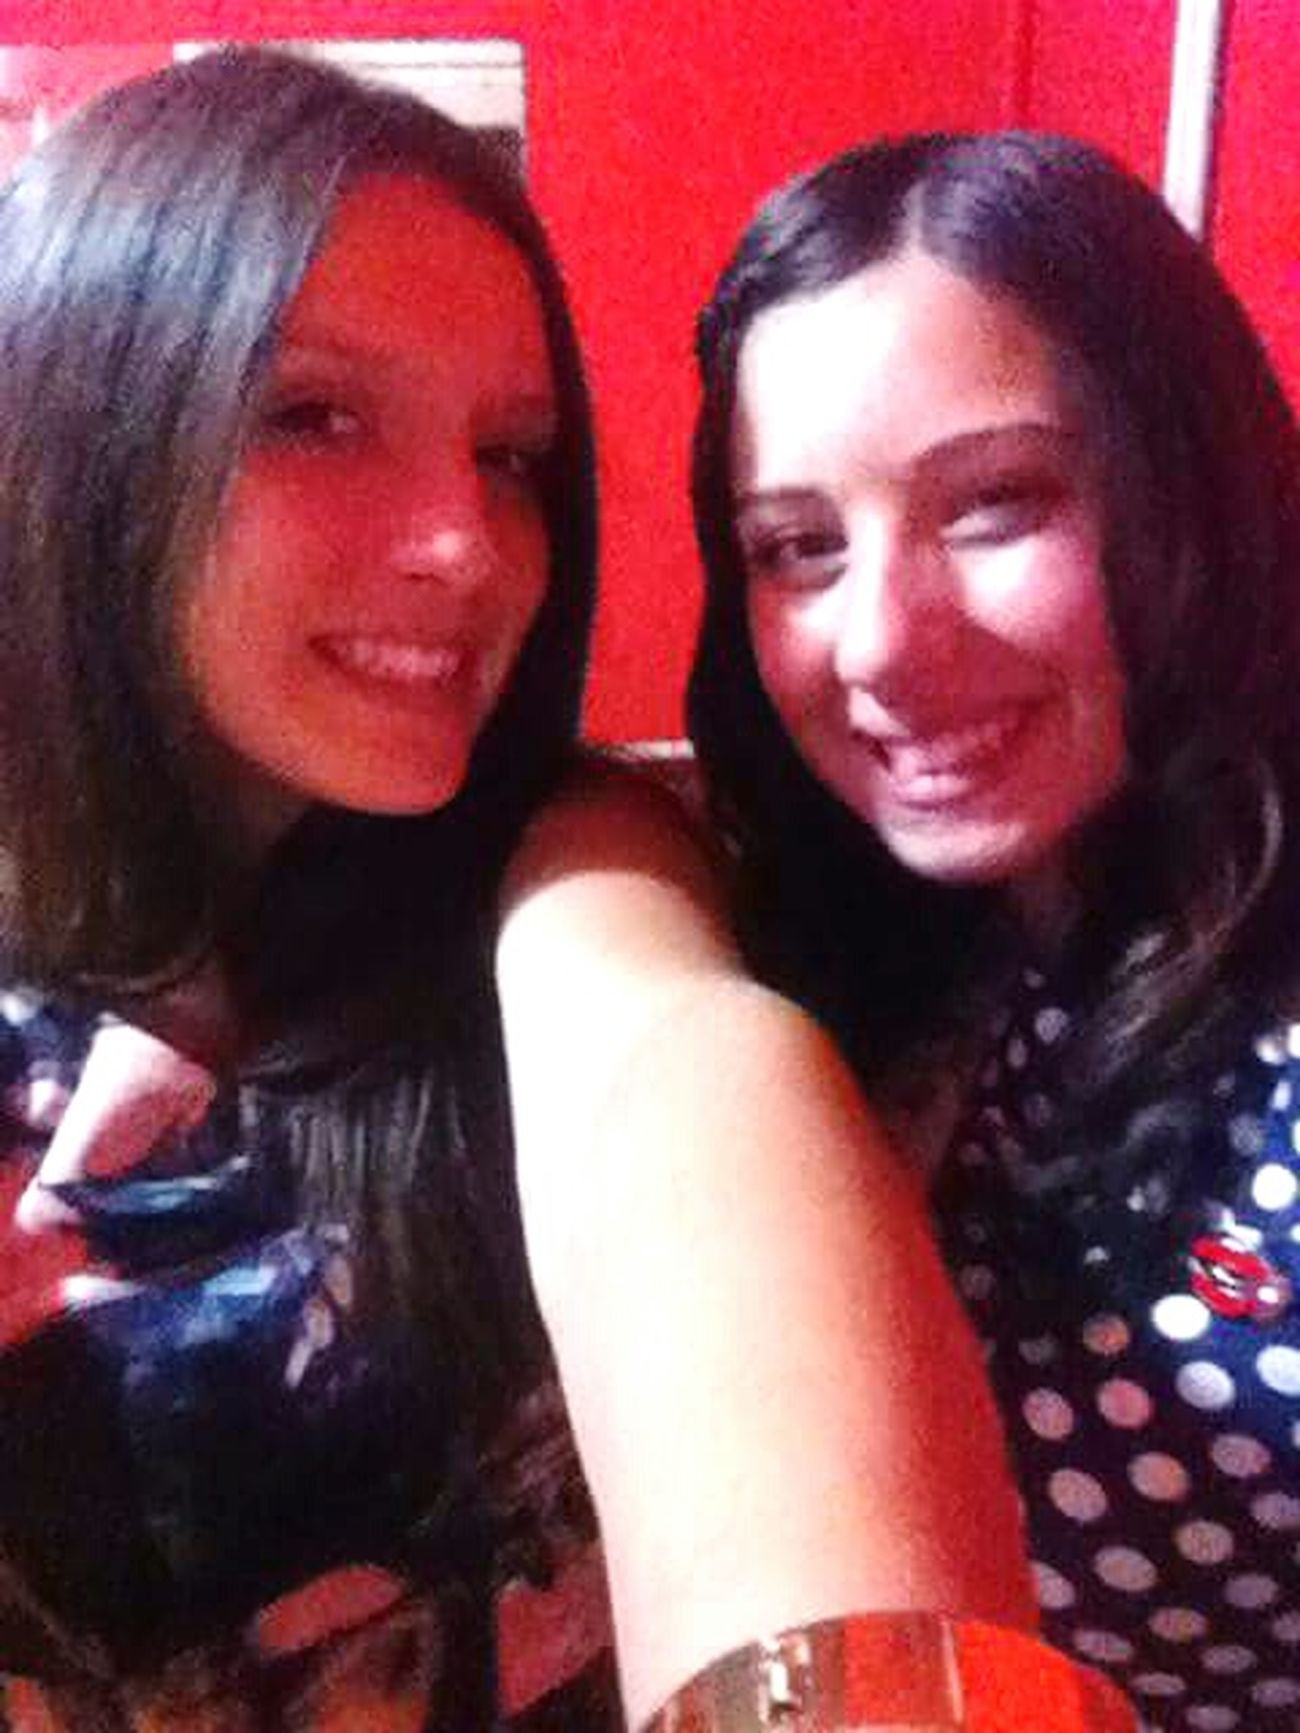 Party ❤ Happiness ♡ Days  With My Friend ♥